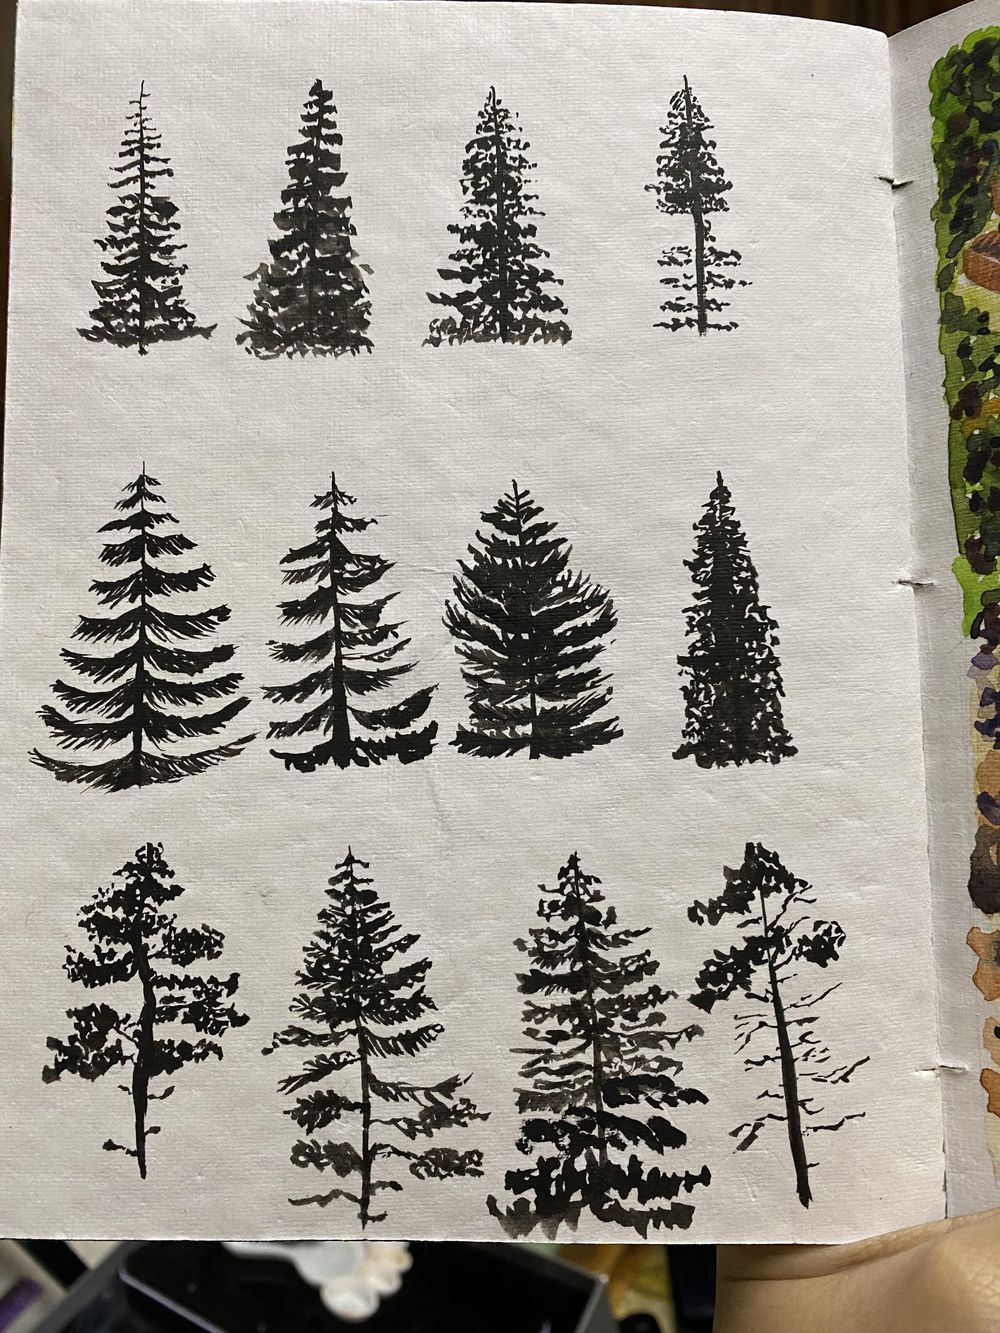 12 Pine Trees - image 2 - student project